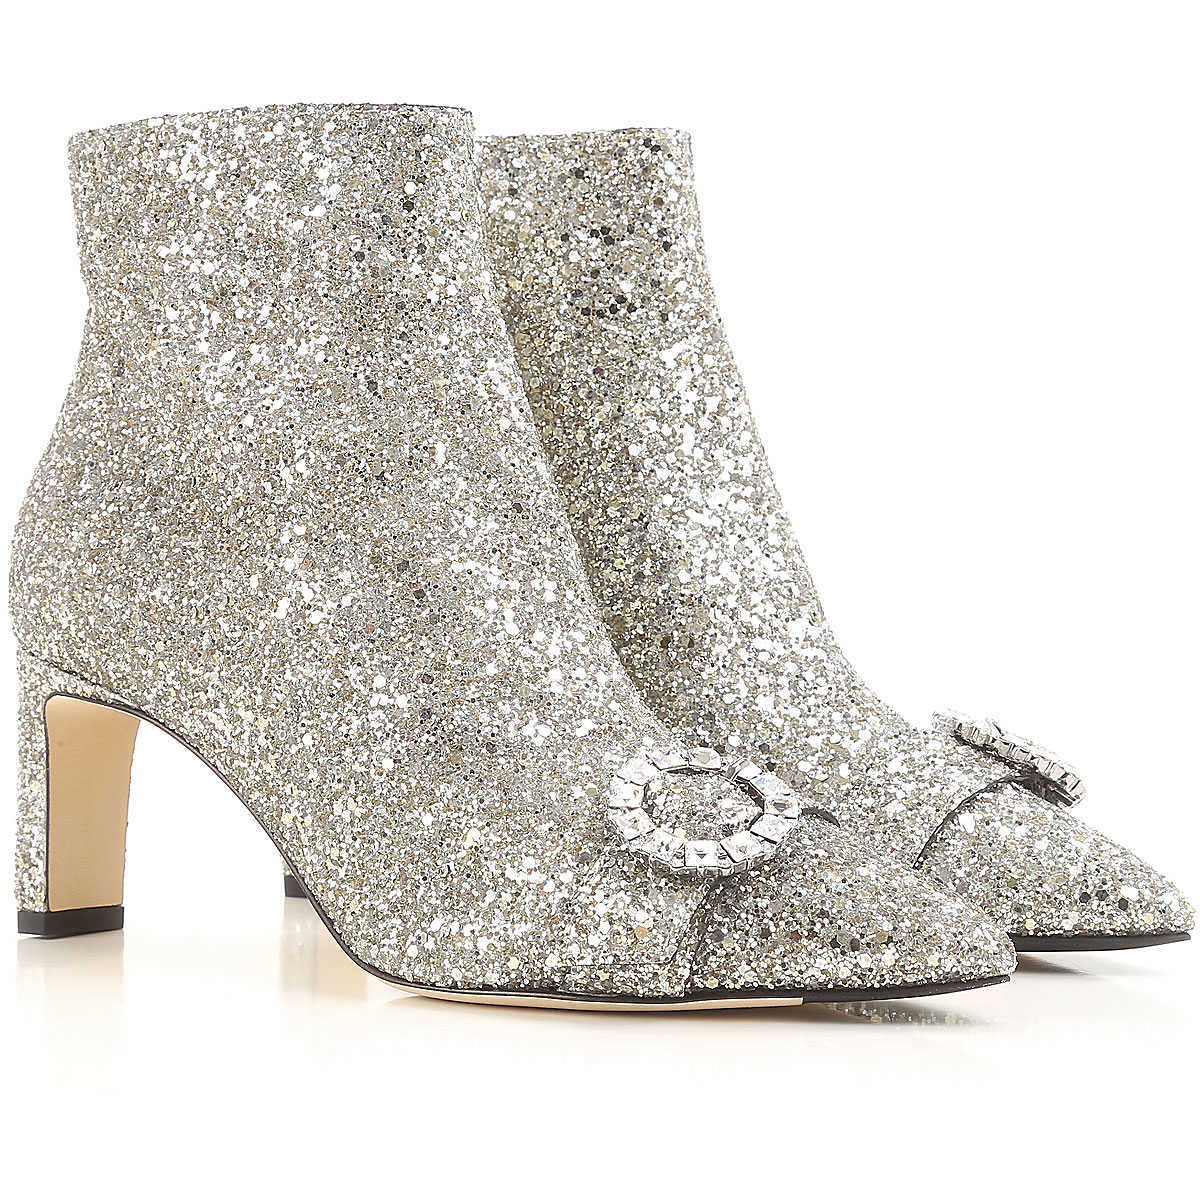 Jimmy Choo Boots for Women Booties On Sale in Outlet DK - GOOFASH - Womens BOOTS